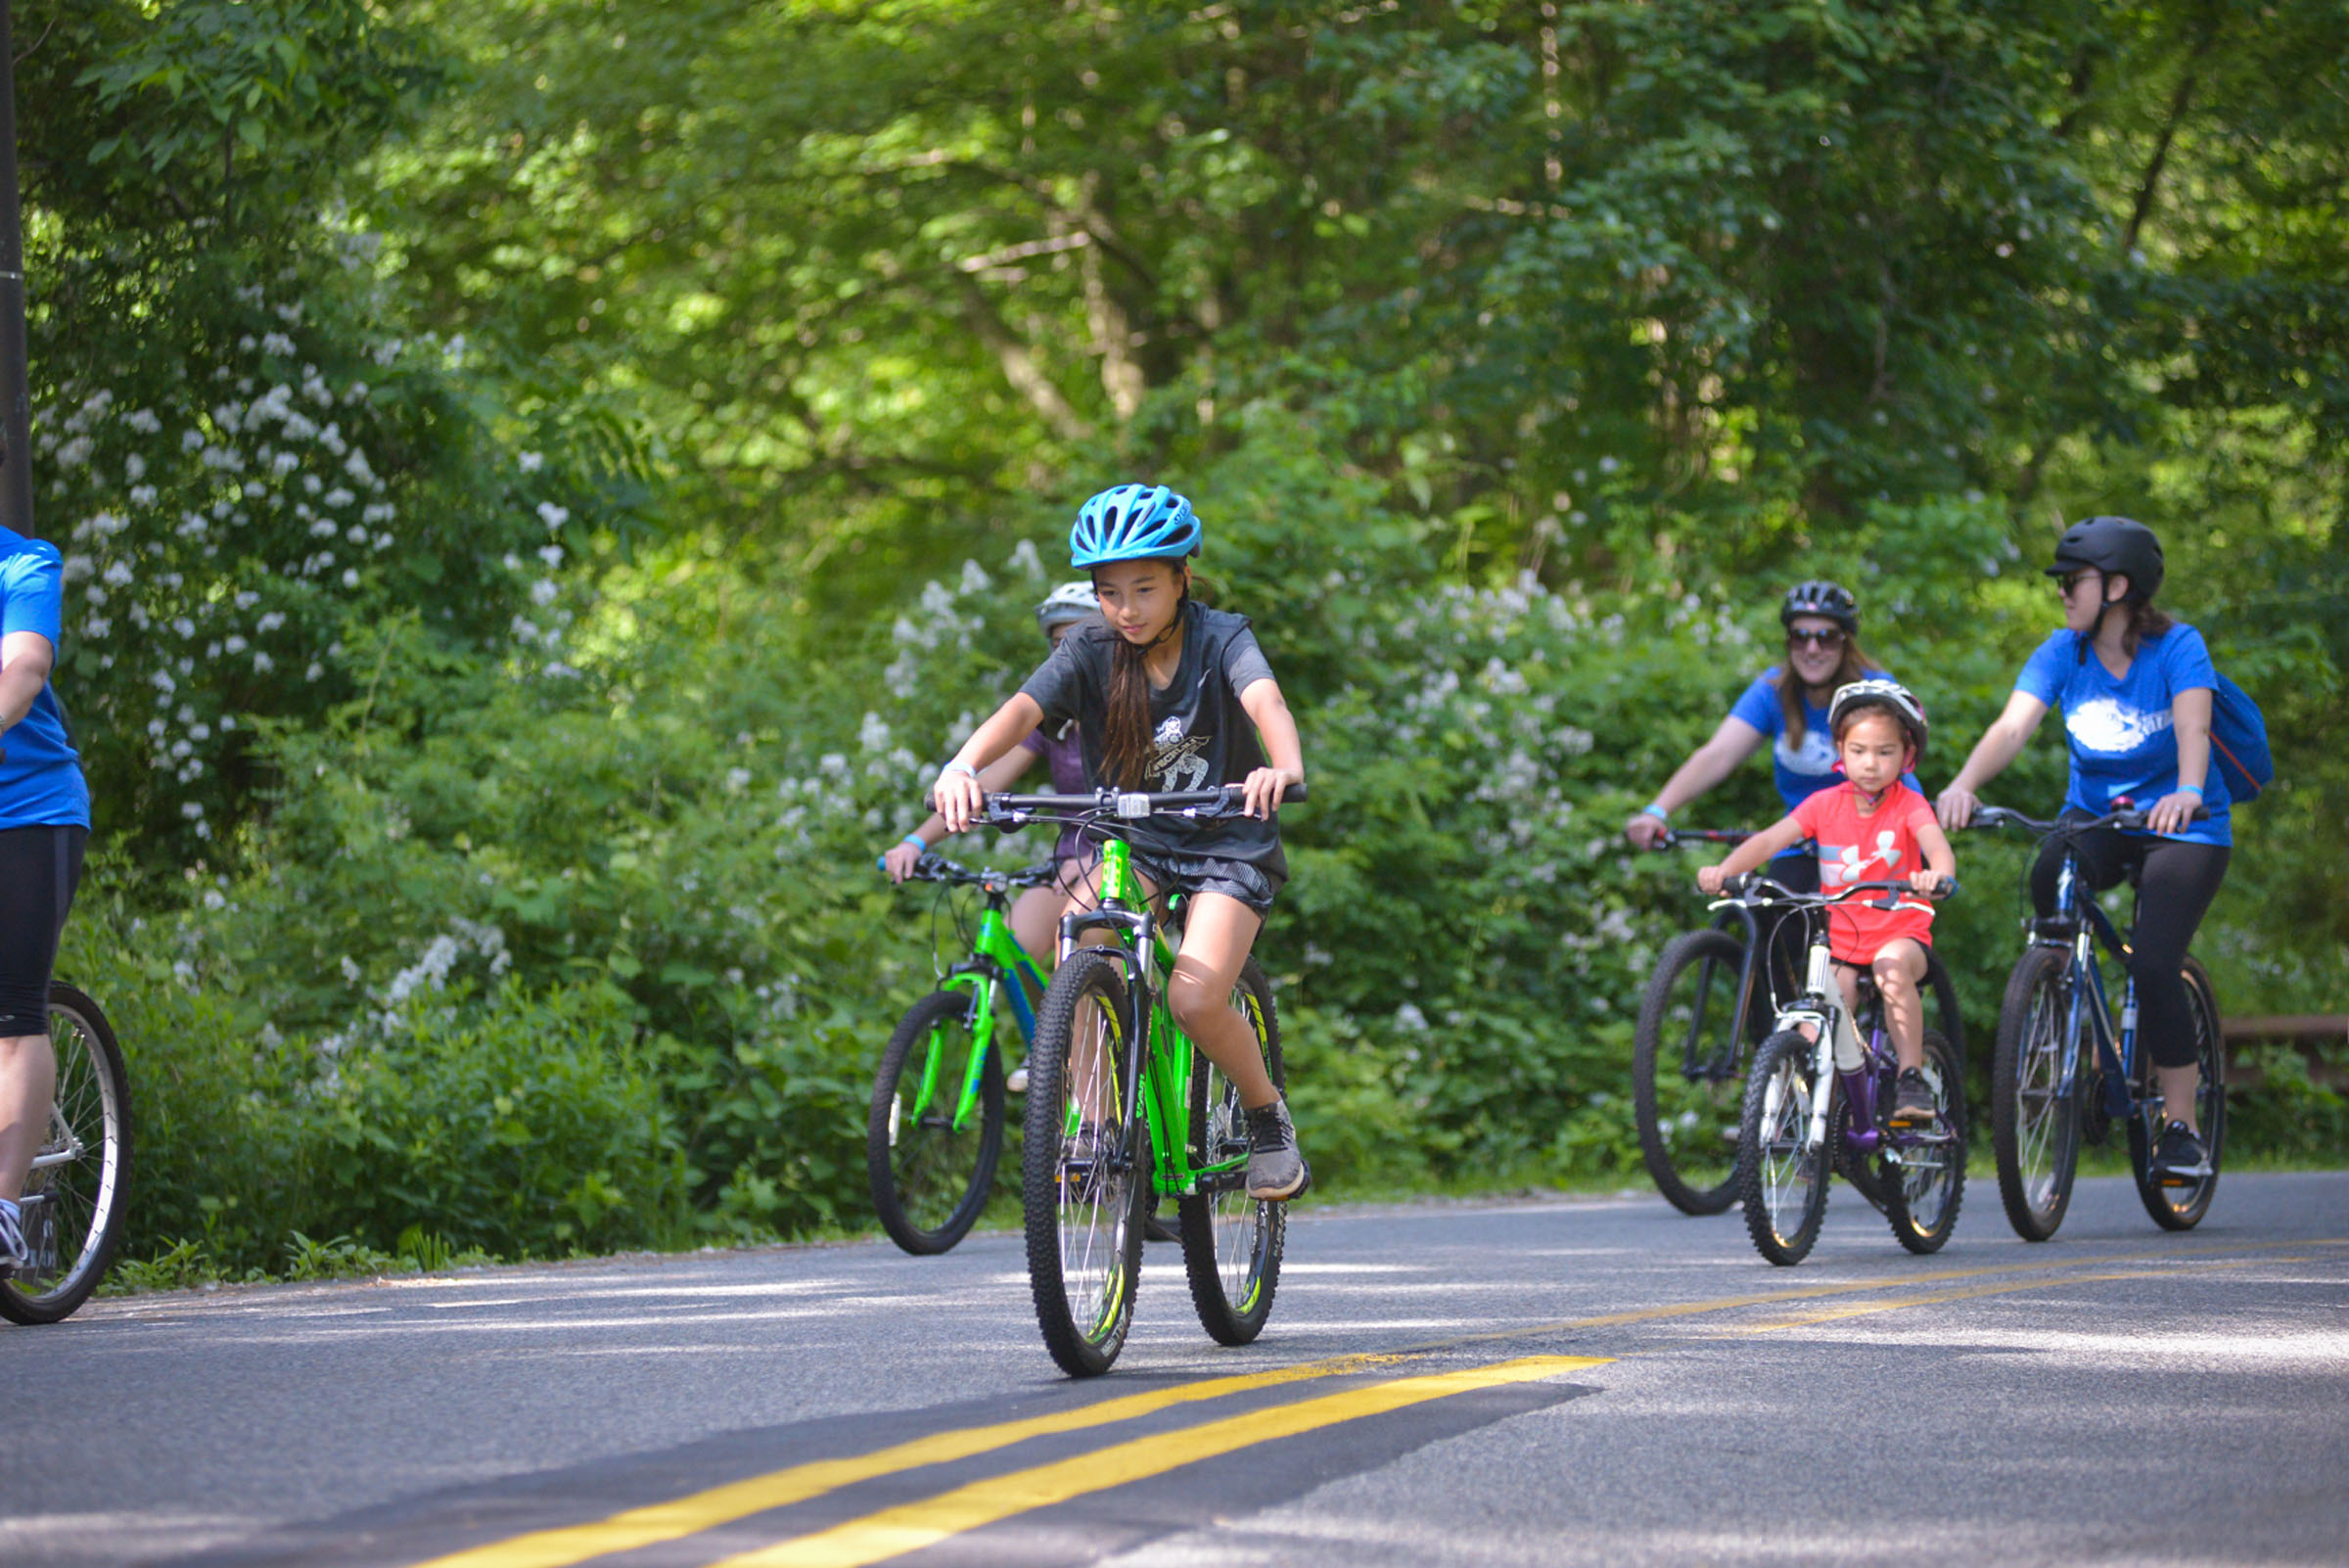 2017-06-04 GTD4A Charity Bike Ride - BCC - Paramus NJ-2076.jpg